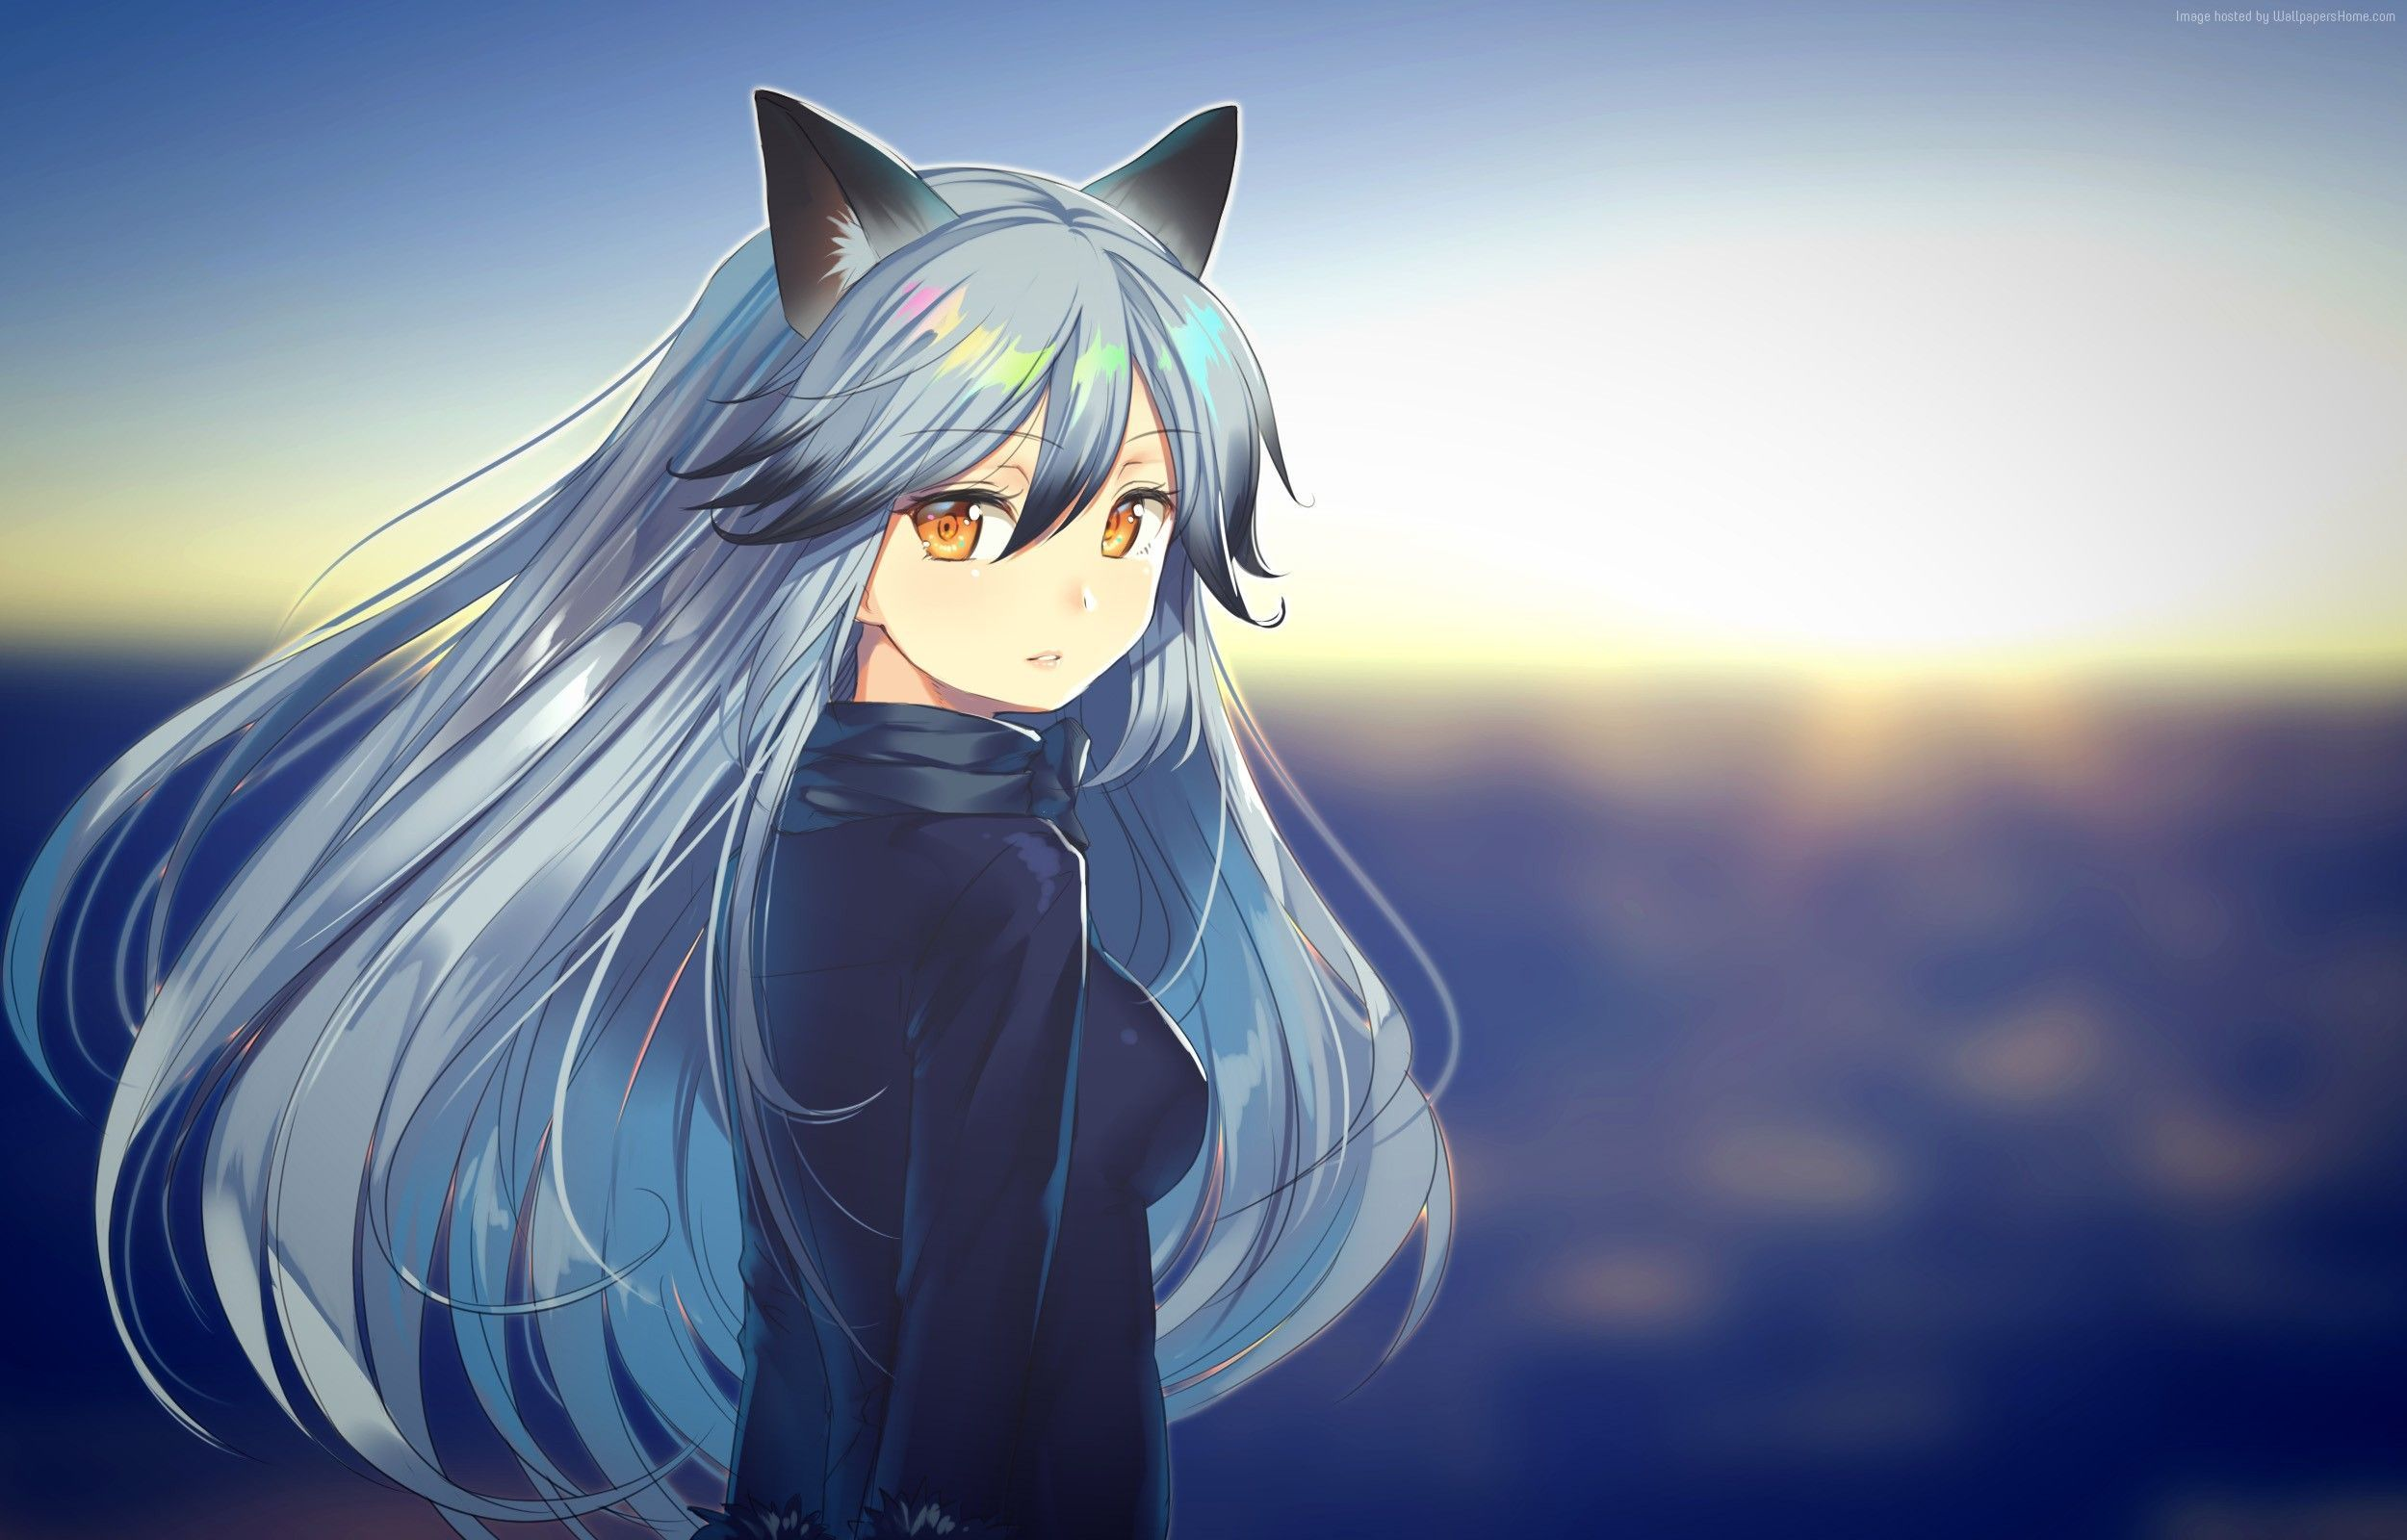 Anime Fox Girl Wallpapers Top Free Anime Fox Girl Backgrounds Wallpaperaccess